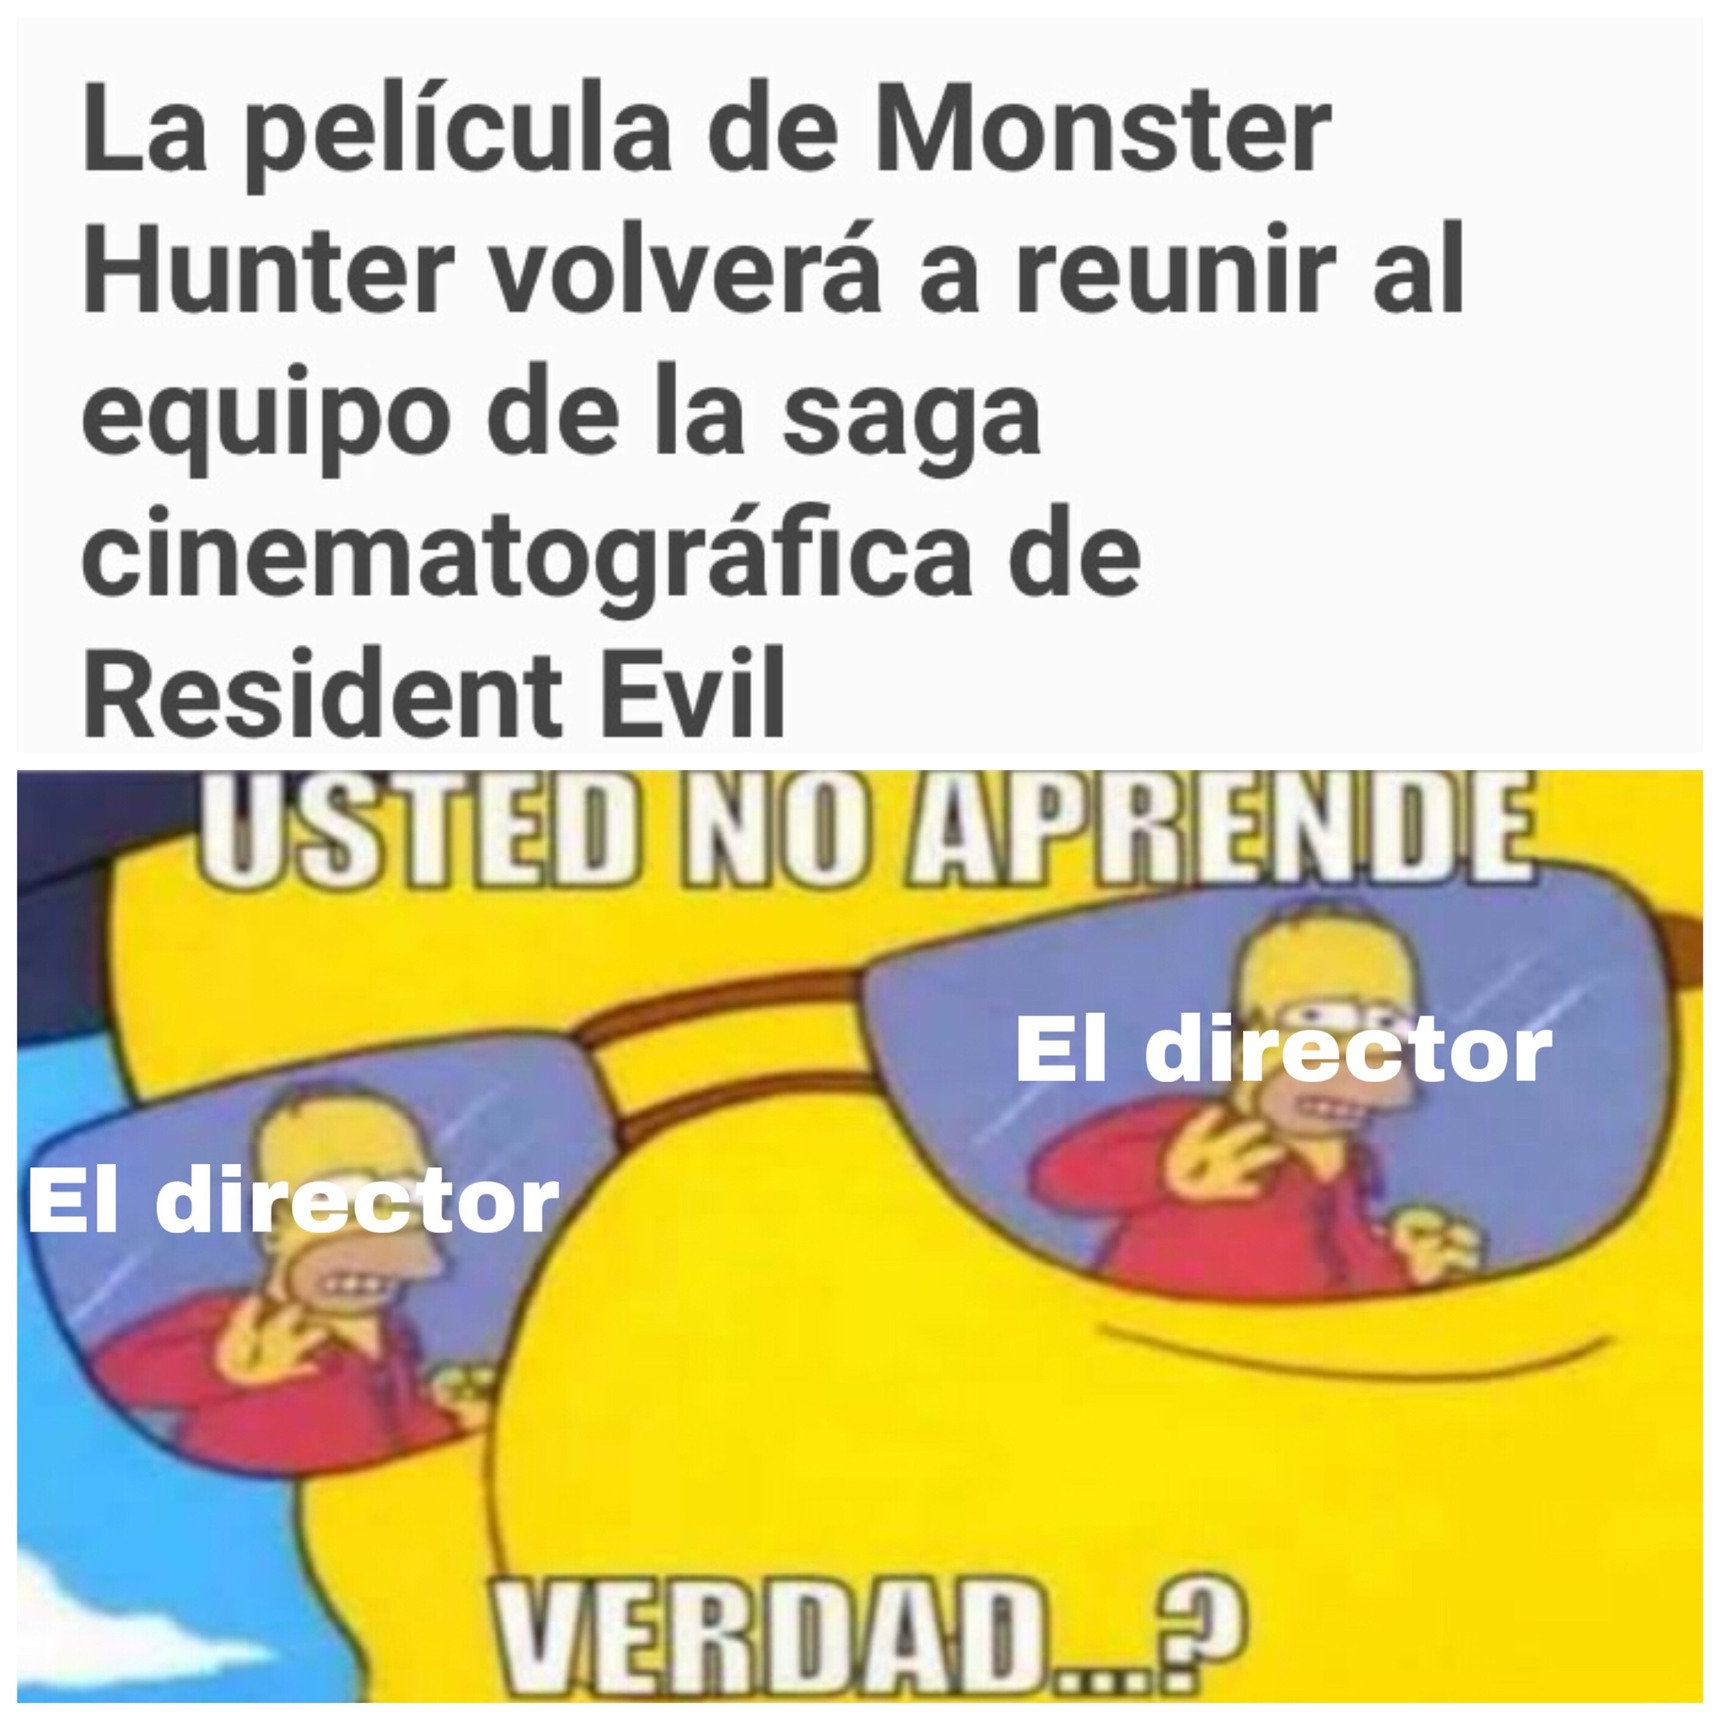 El director de la película live action de resident evil hará una película live action de monster hunter - meme